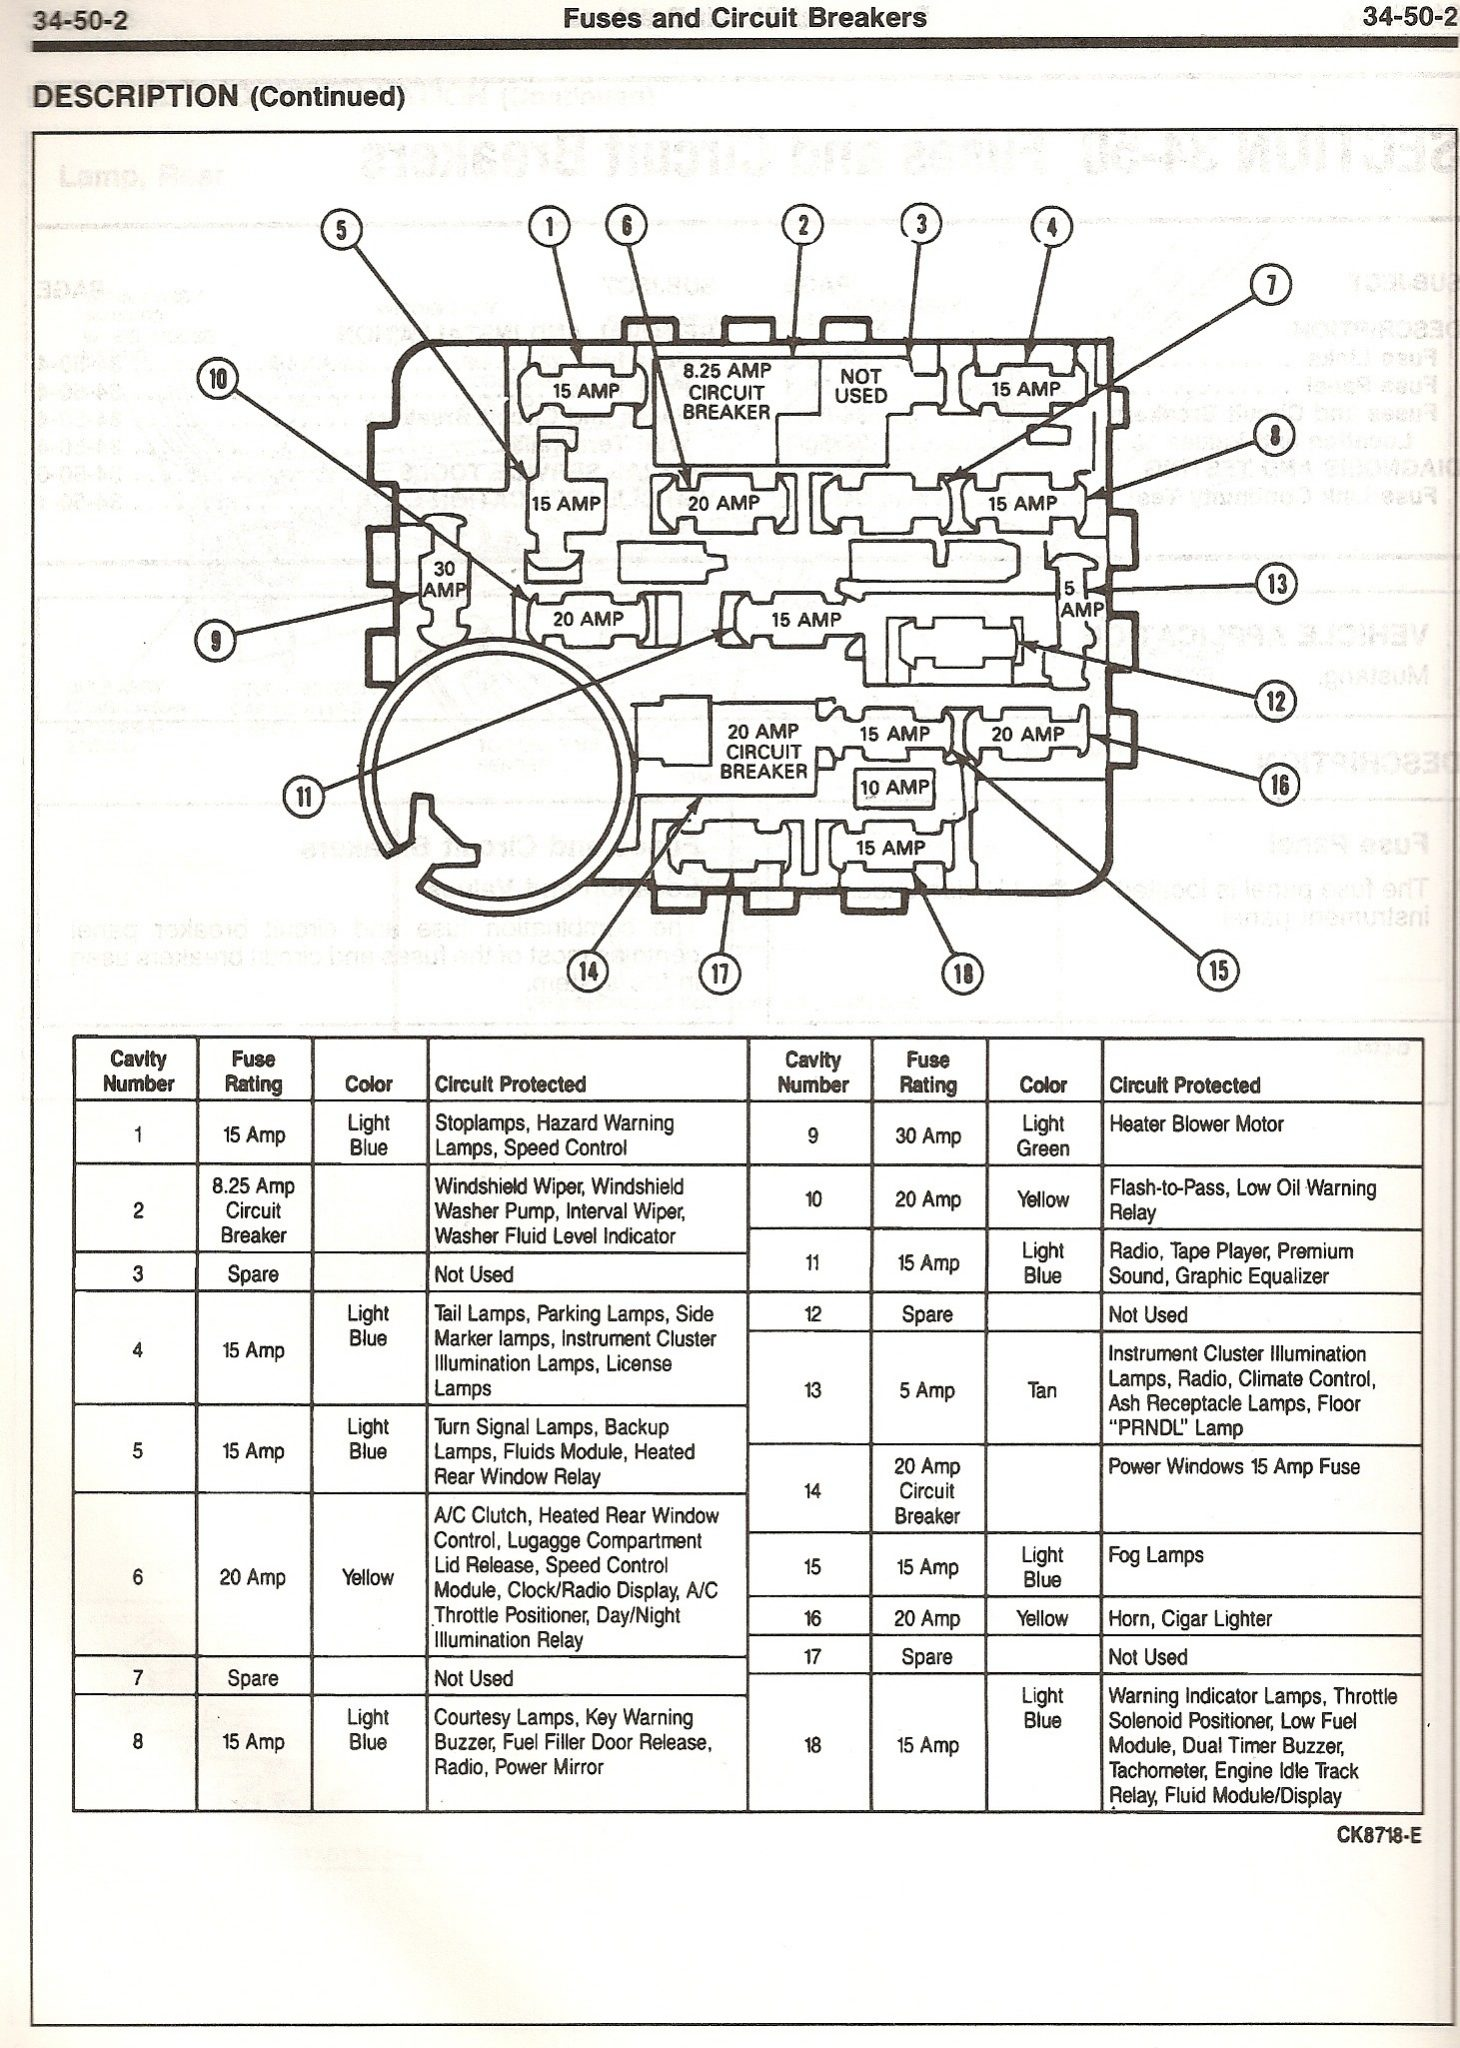 95 ford mustang fuse diagram wiring diagram home 2006 Mustang Fuse Diagram